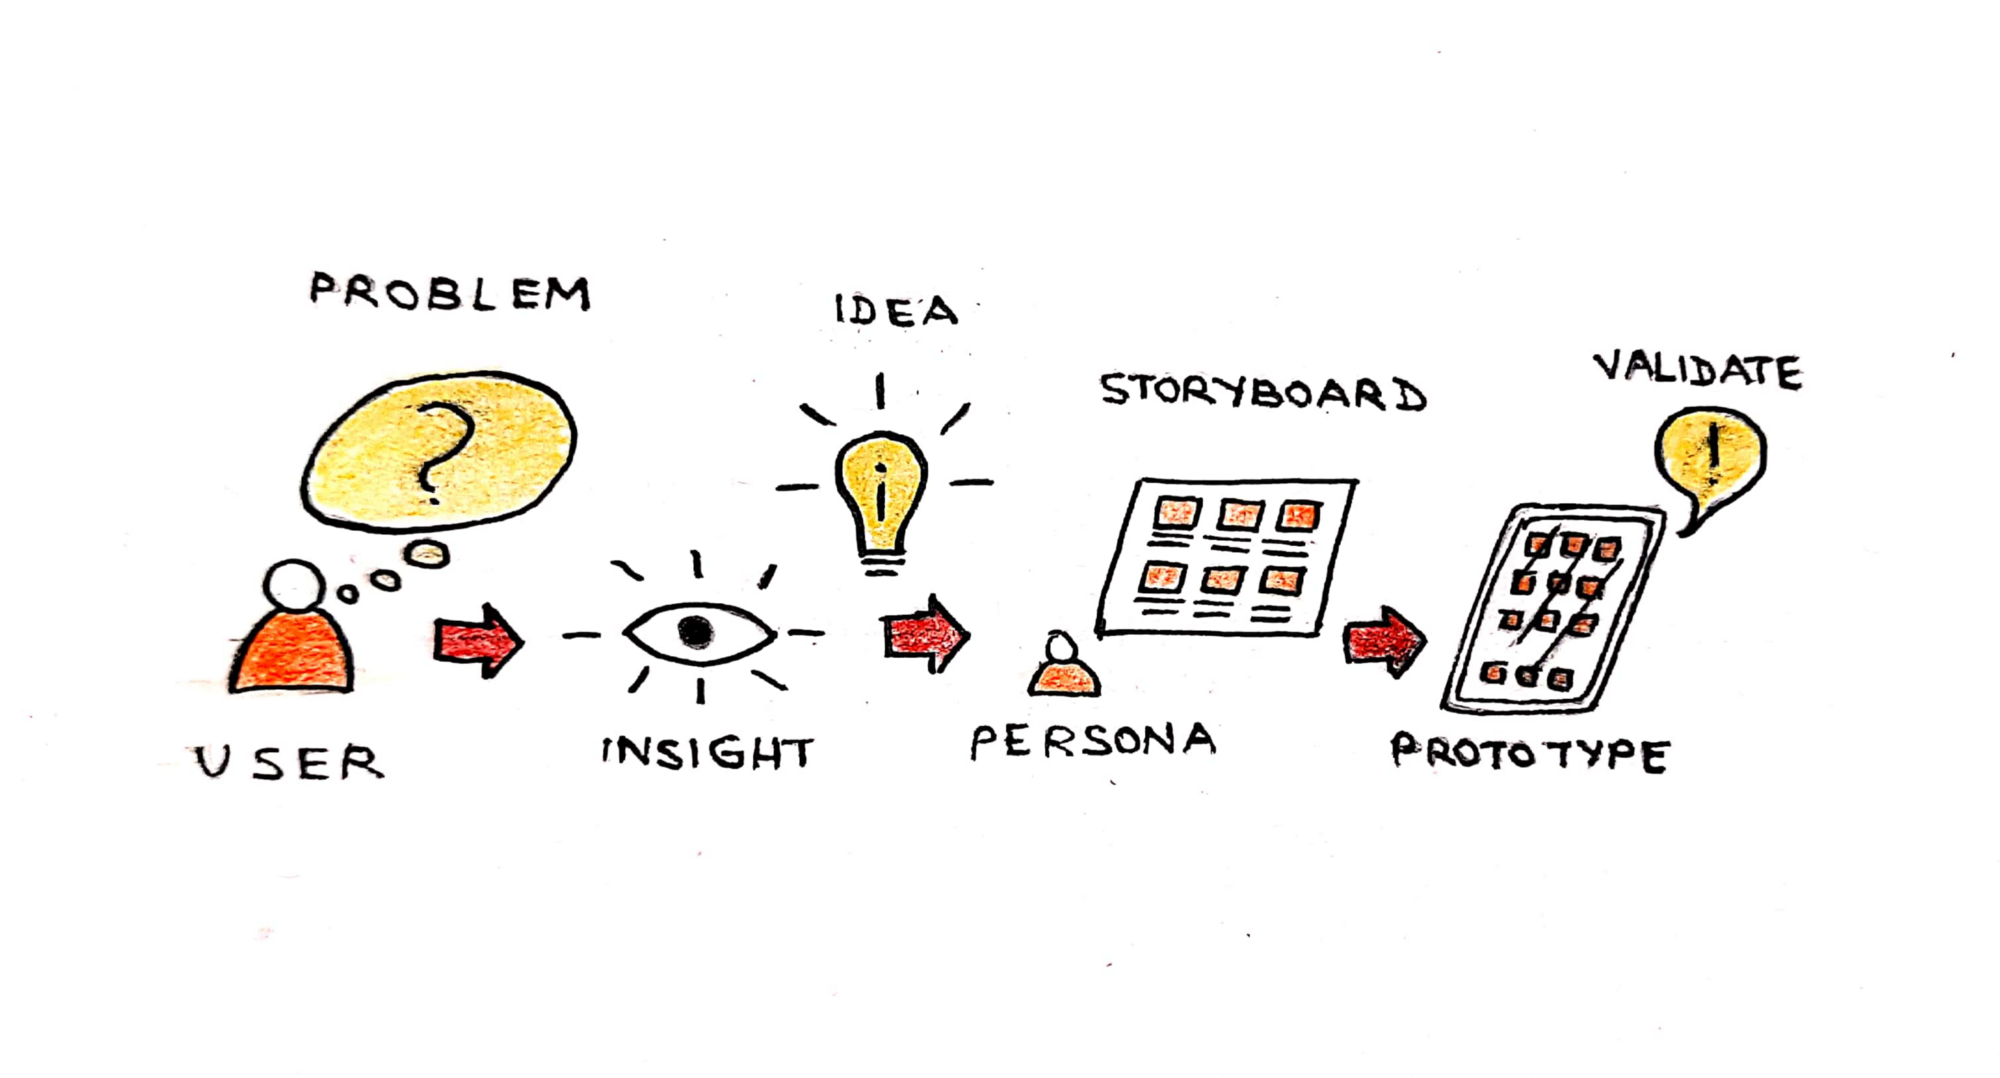 User with problem, insight for an idea and persona with a storyboard leading up as steps to a prototype for validation.